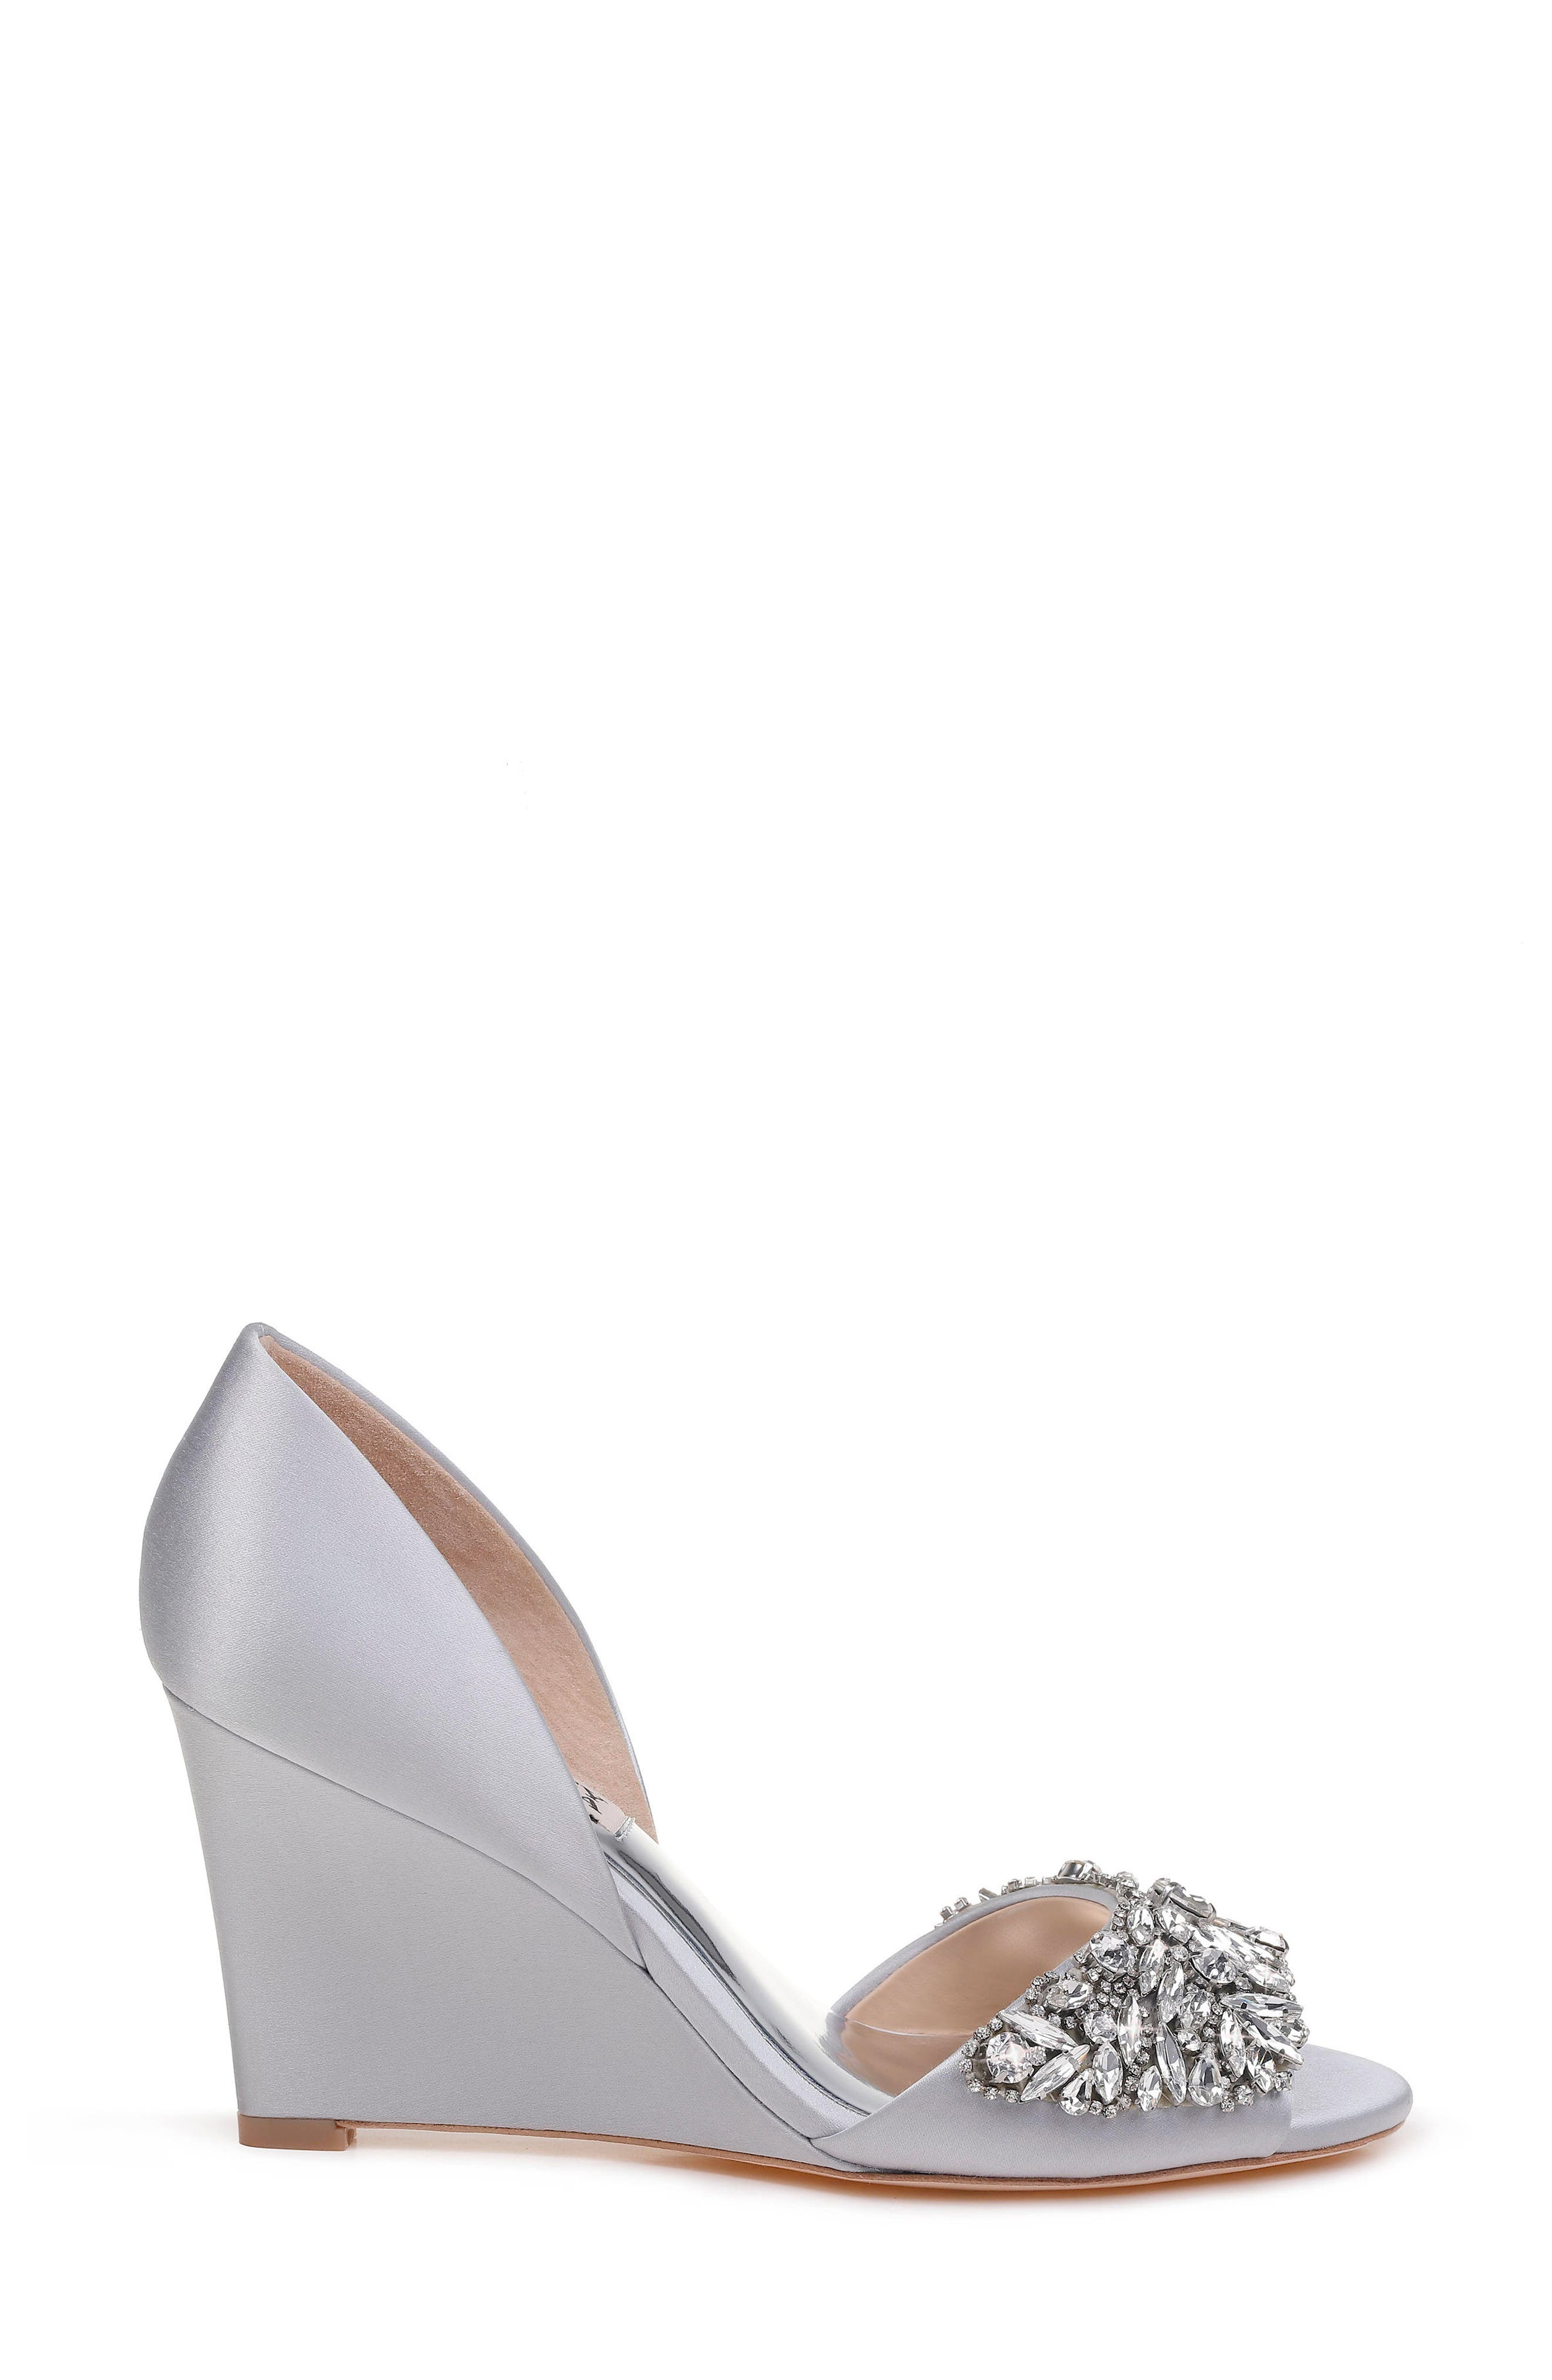 BADGLEY MISCHKA COLLECTION,                             Badgley Mischka Hardy Embellished Wedge,                             Alternate thumbnail 3, color,                             045